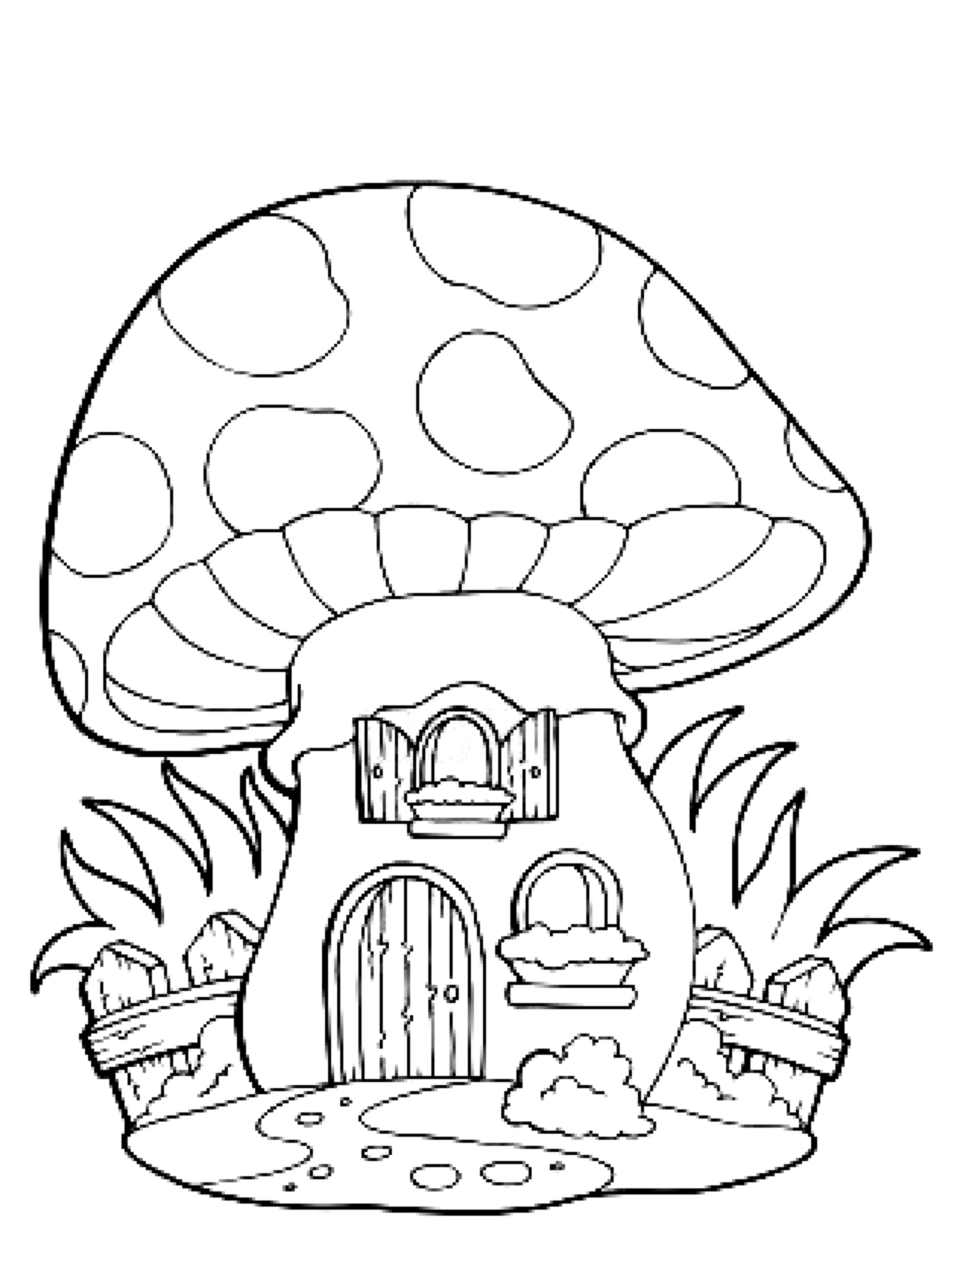 Coloriage Igloo À Imprimer destiné Coloriage Igloo